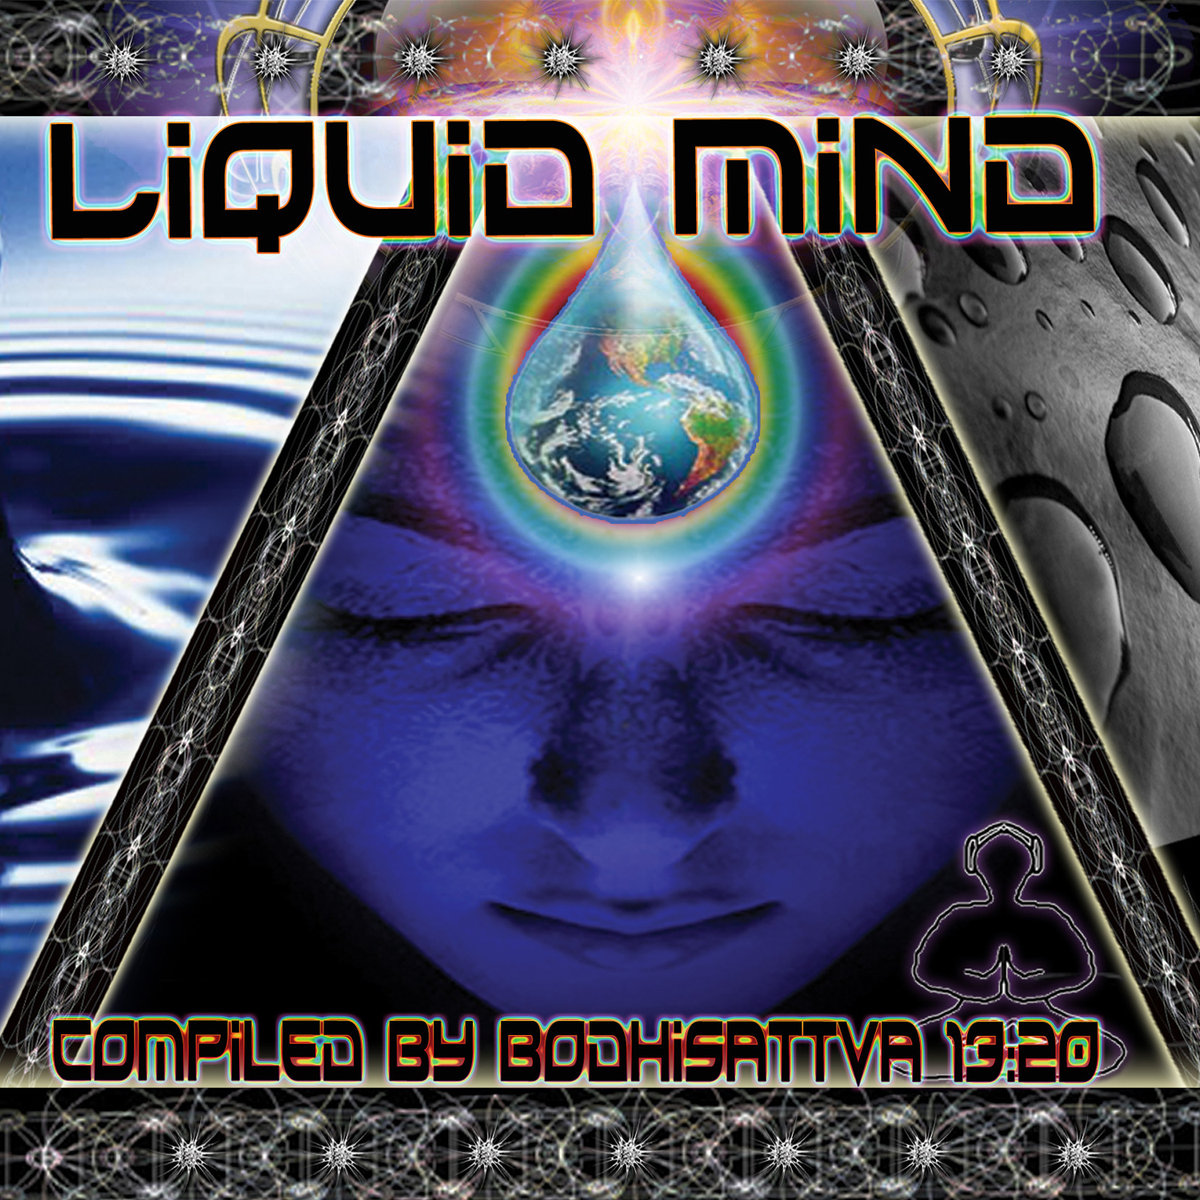 Monks of Madness - Broken Machine Office @ 'Various Artists - Liquid Mind (Compiled by Bodhisattva 13:20)' album (electronic, and)